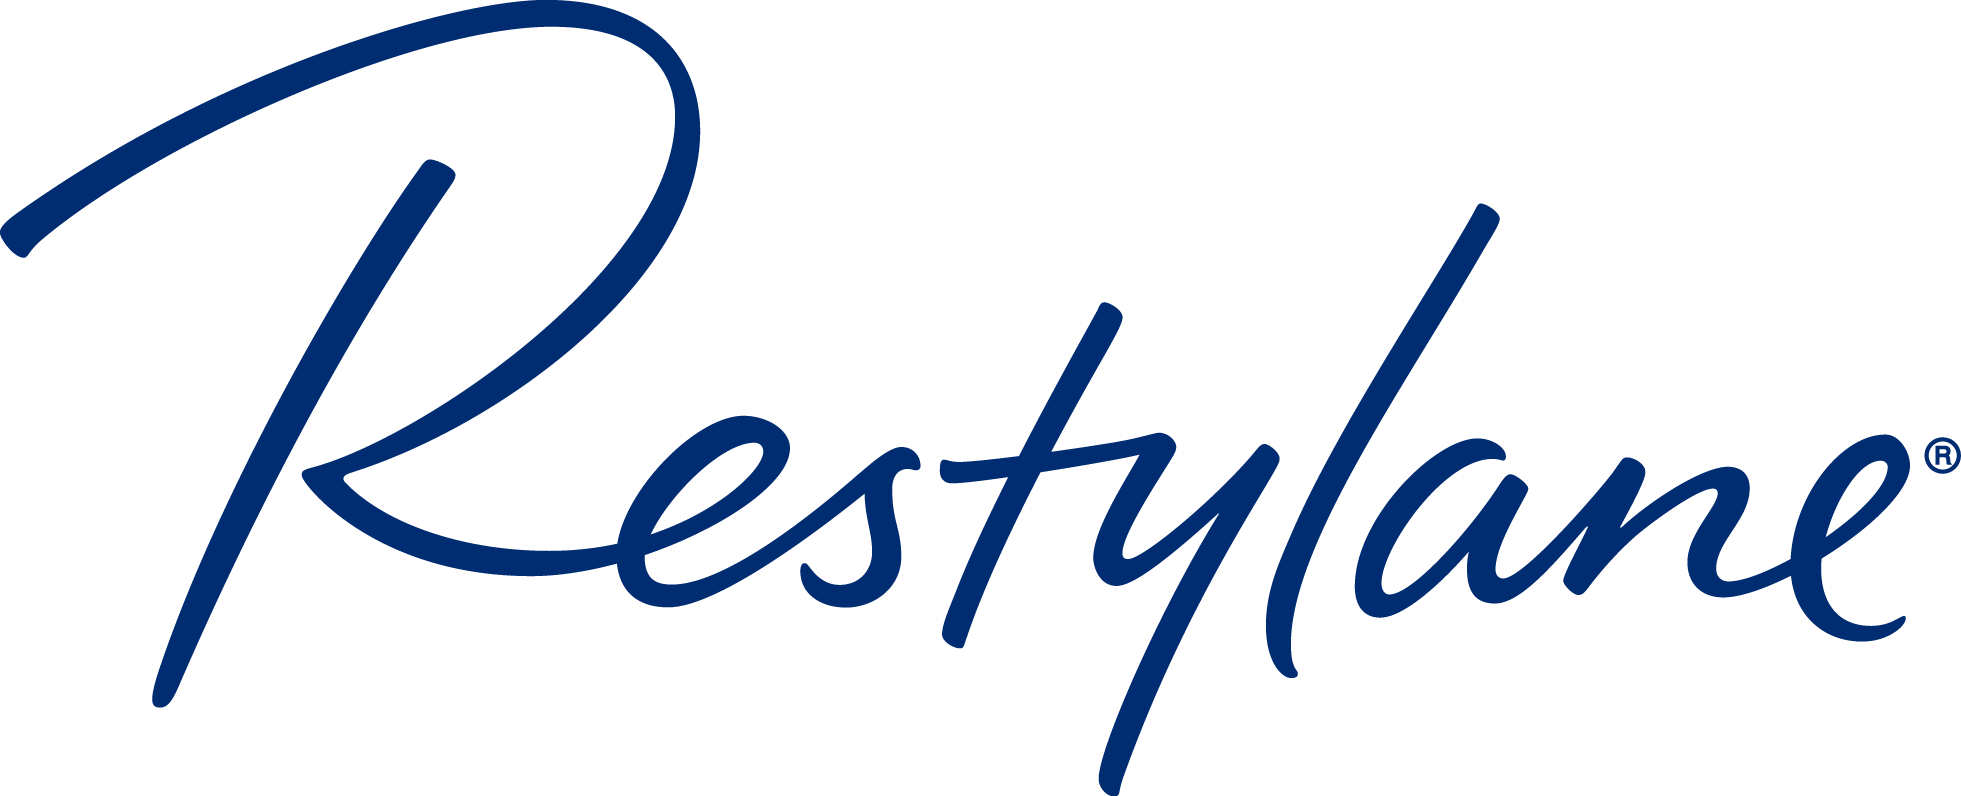 Restylane Wrinkle Treatment